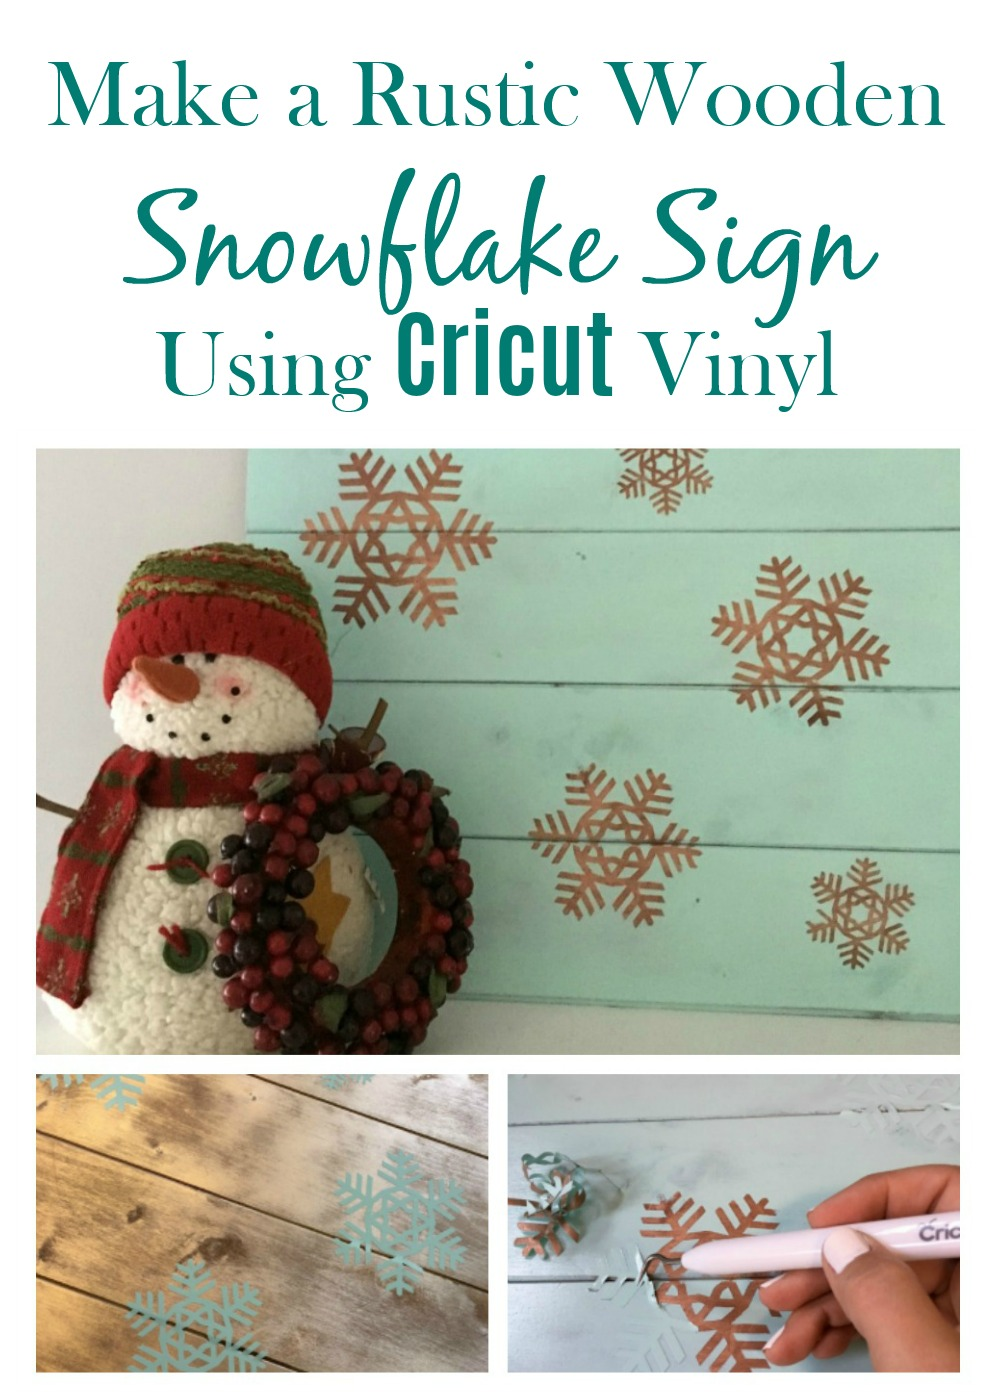 Real Girl\u0027s Realm: Rustic Wooden Snowflake Sign